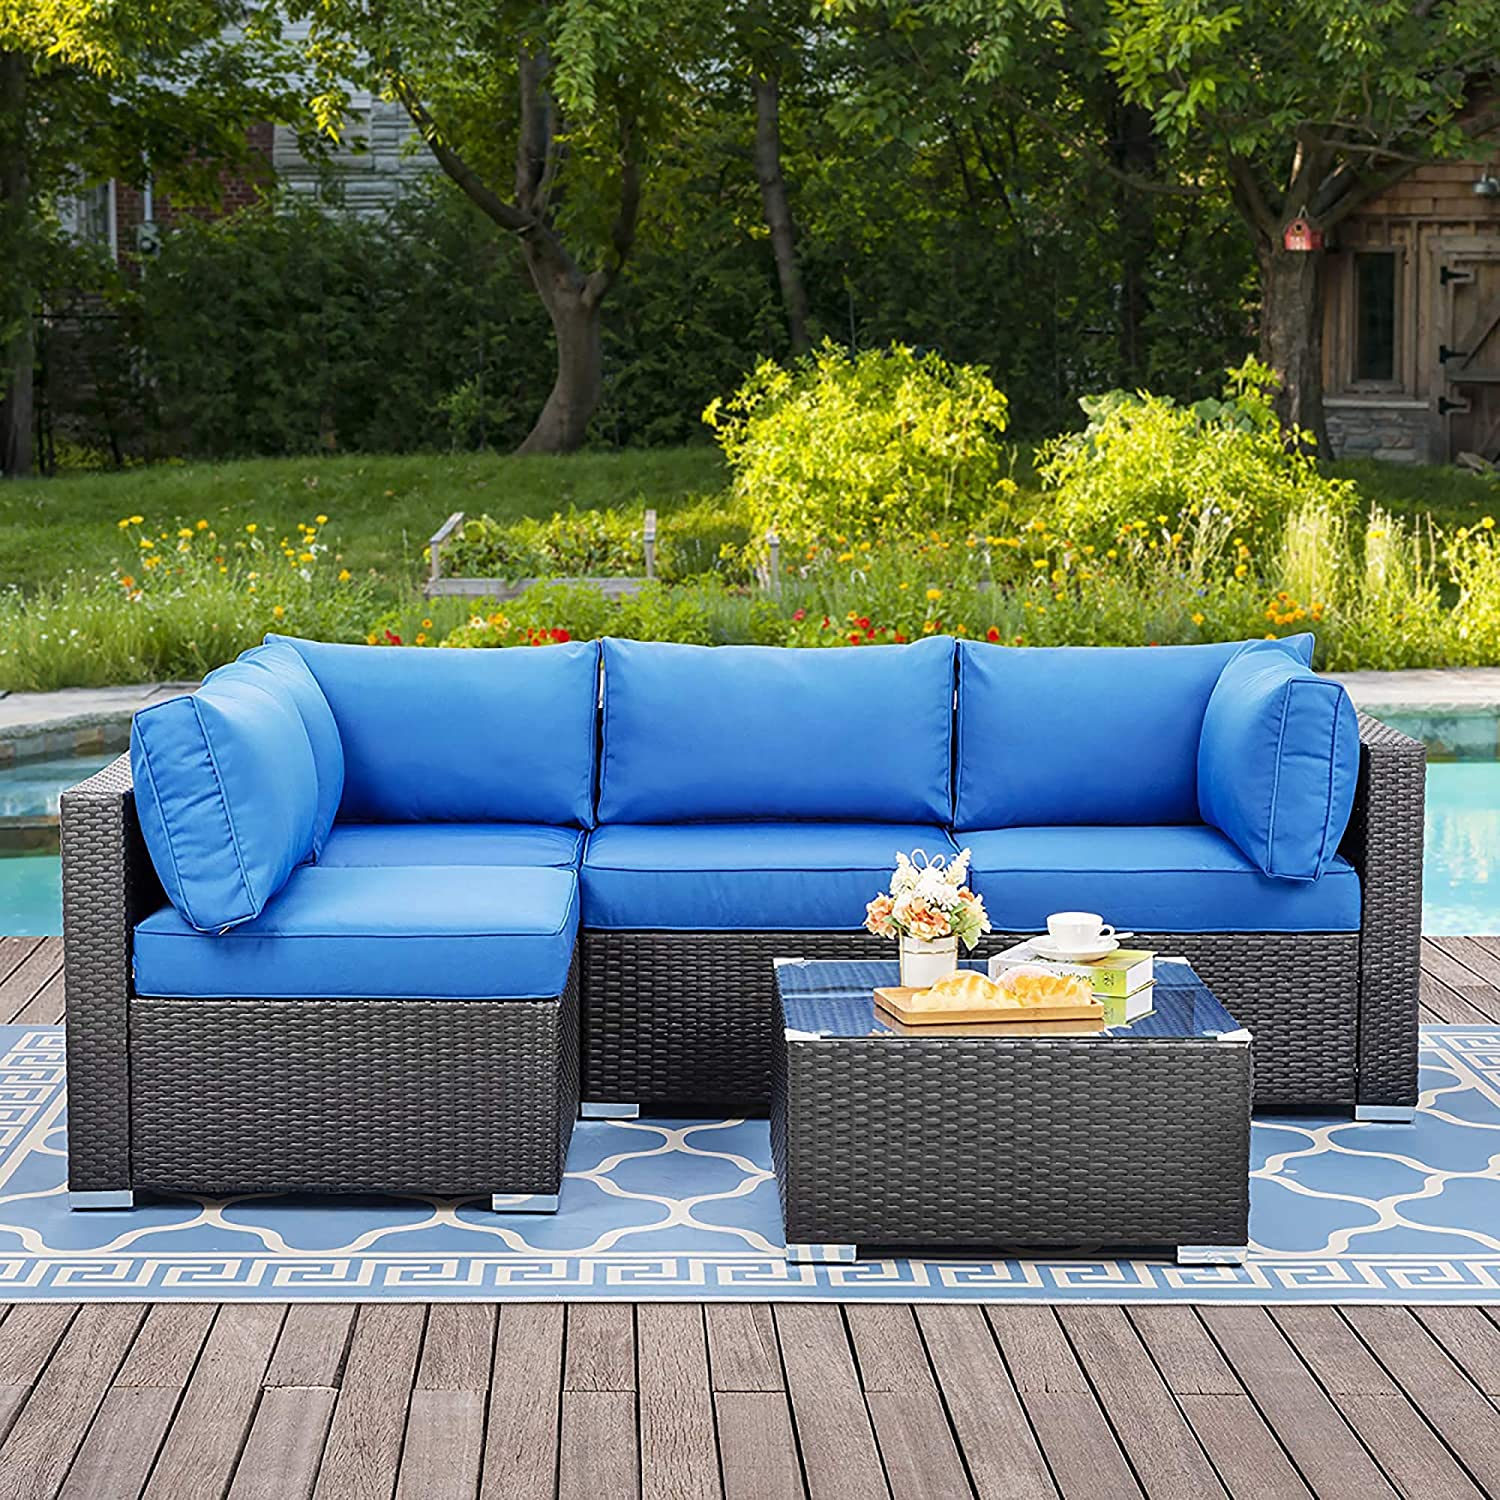 Walsunny Outdoor Black Rattan Sectional Sofa- Patio Wicker Furniture Set Conversation Sets with Tea Table&Washable Couch Cushions (Navy Blue)